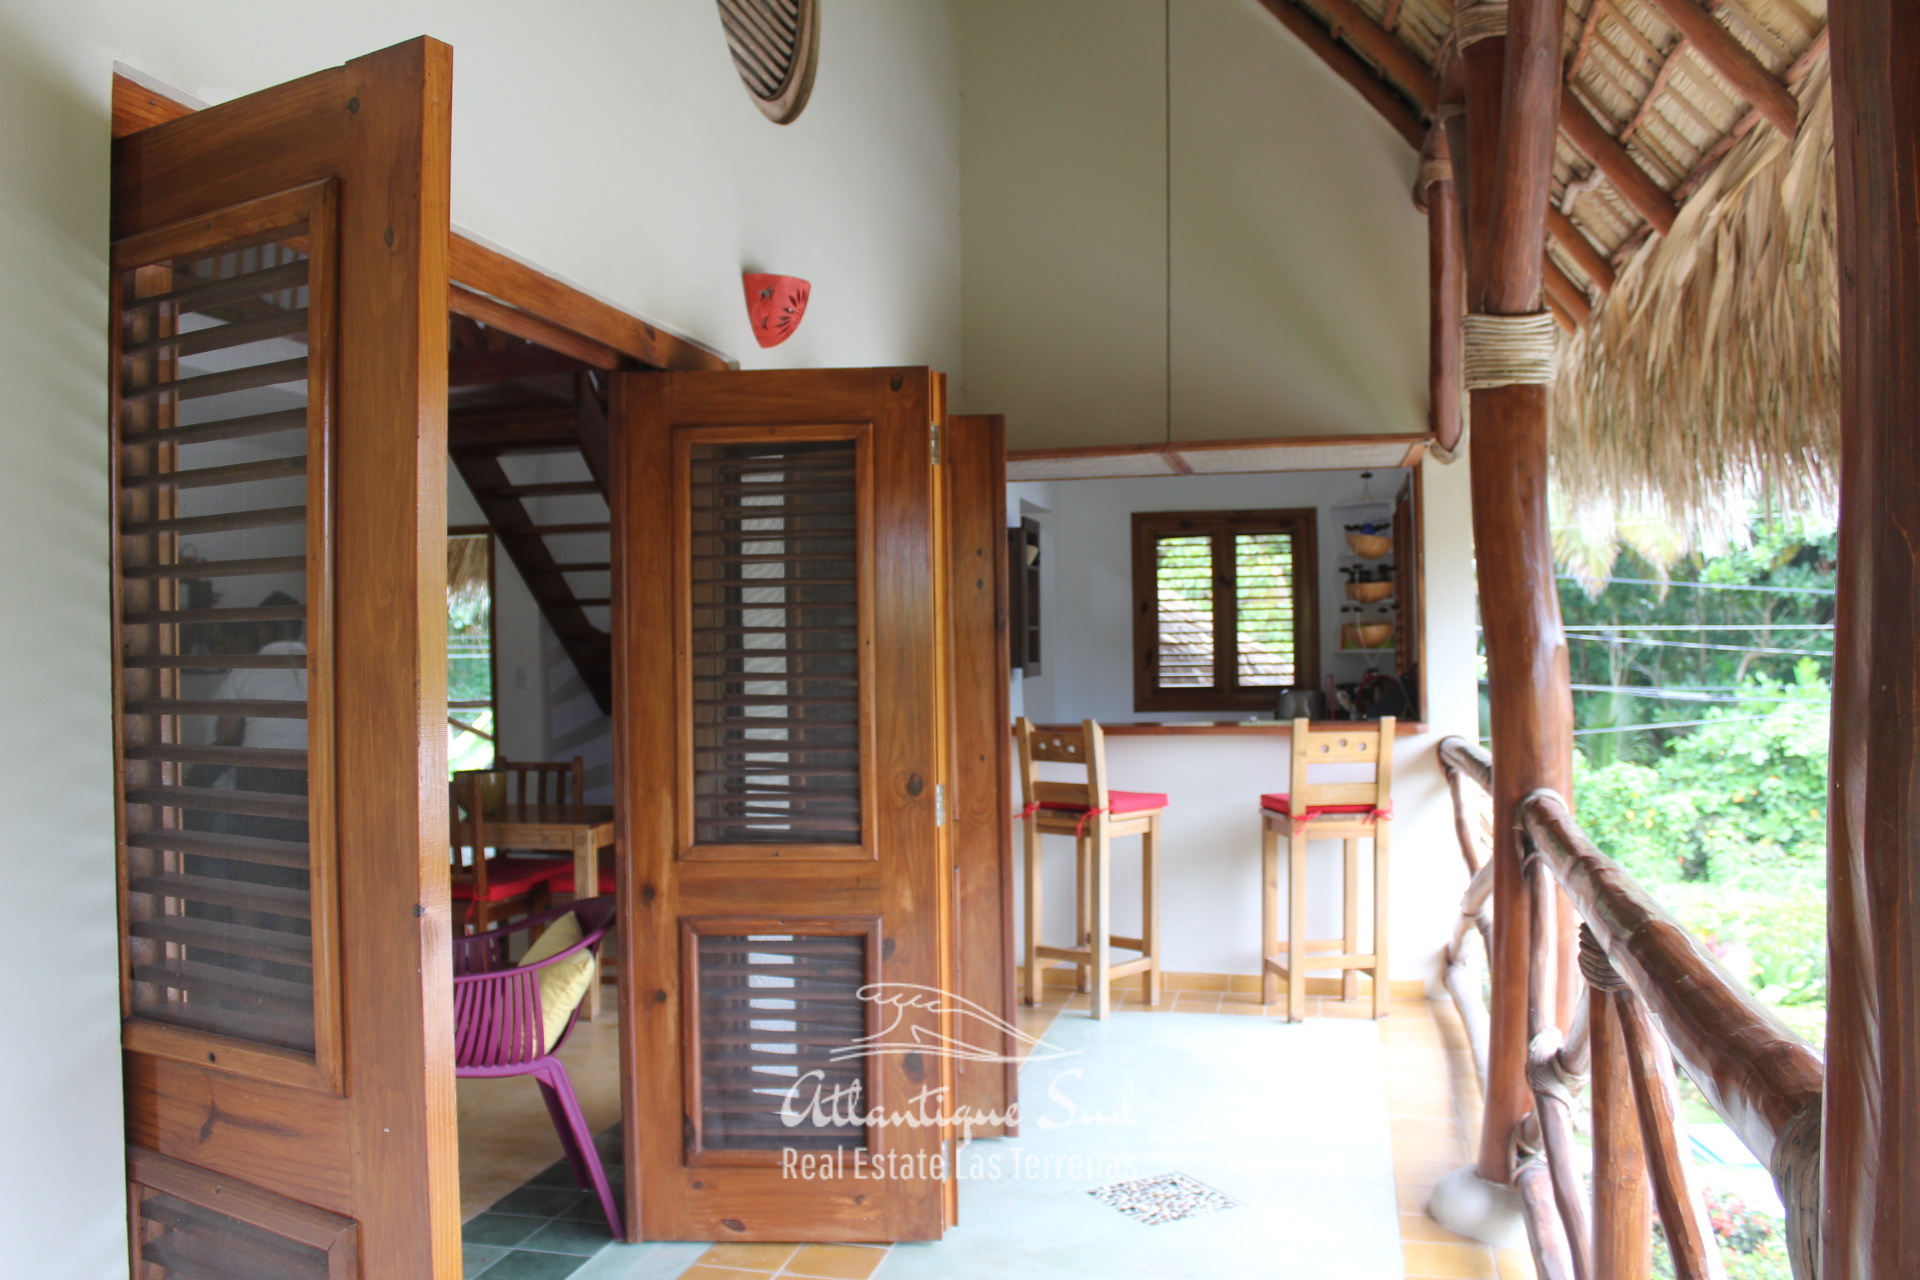 For-sale-Apartment-in-beachfront-community-with-mezzanine-Las-Terrenas_4825 (1).JPG